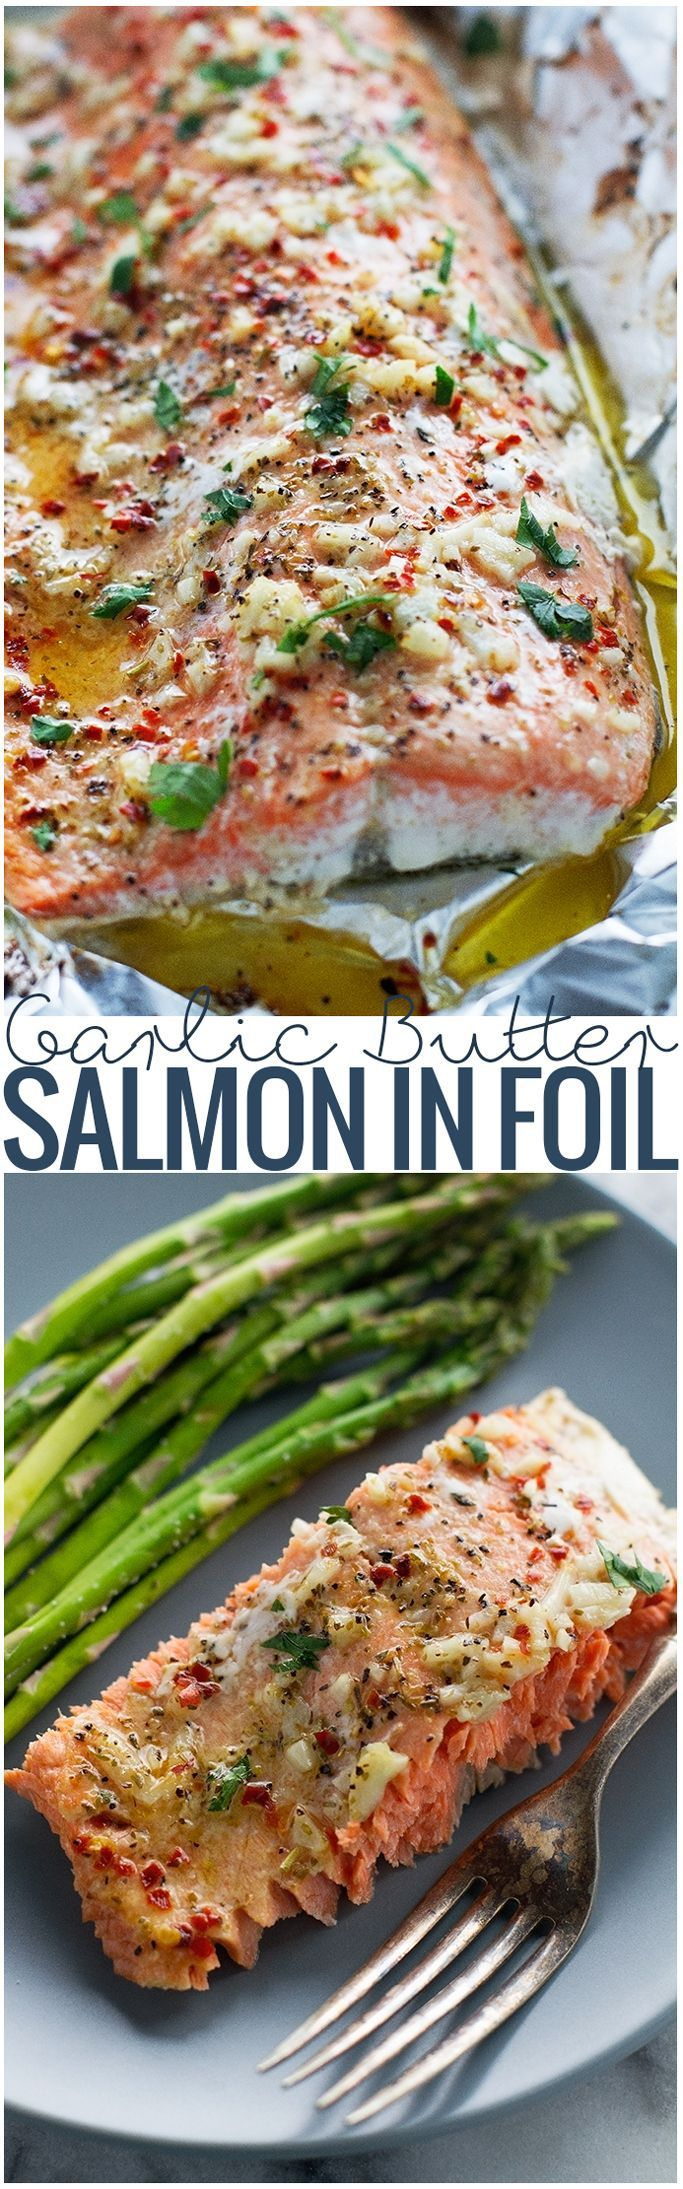 Baked salmon in foil that's been brushed with my lemon garlic butter sauce. This recipe is so easy to make and pulls together in less than 30 minutes! The salmon is so flakey and tender when baked inside foil